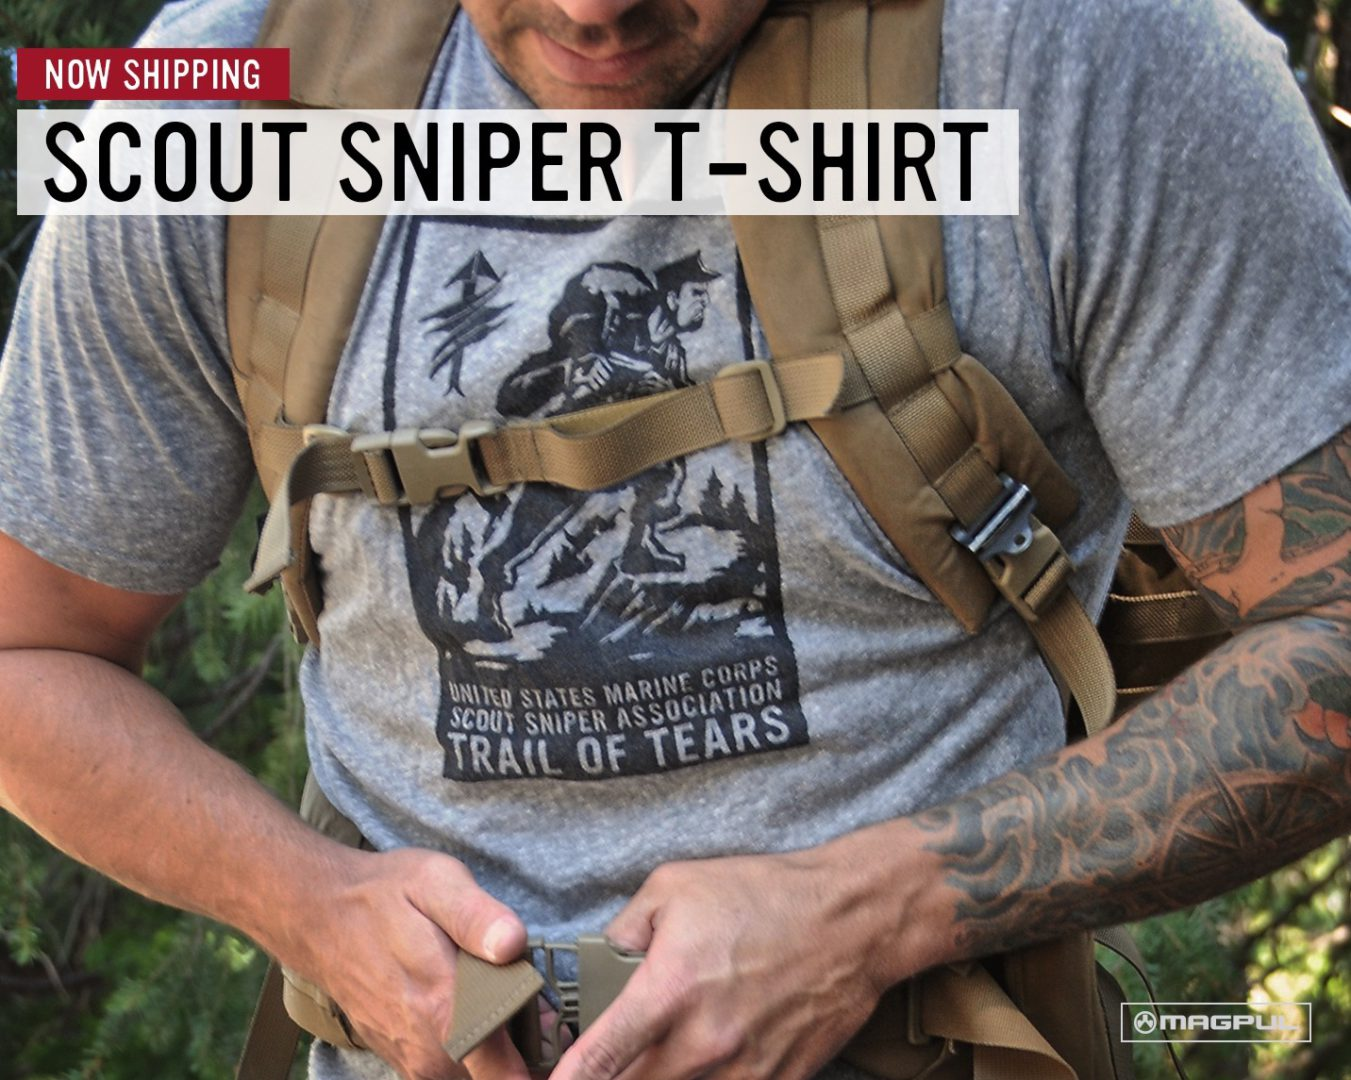 Magpul Scout Sniper Association Trail of Tears T-Shirt